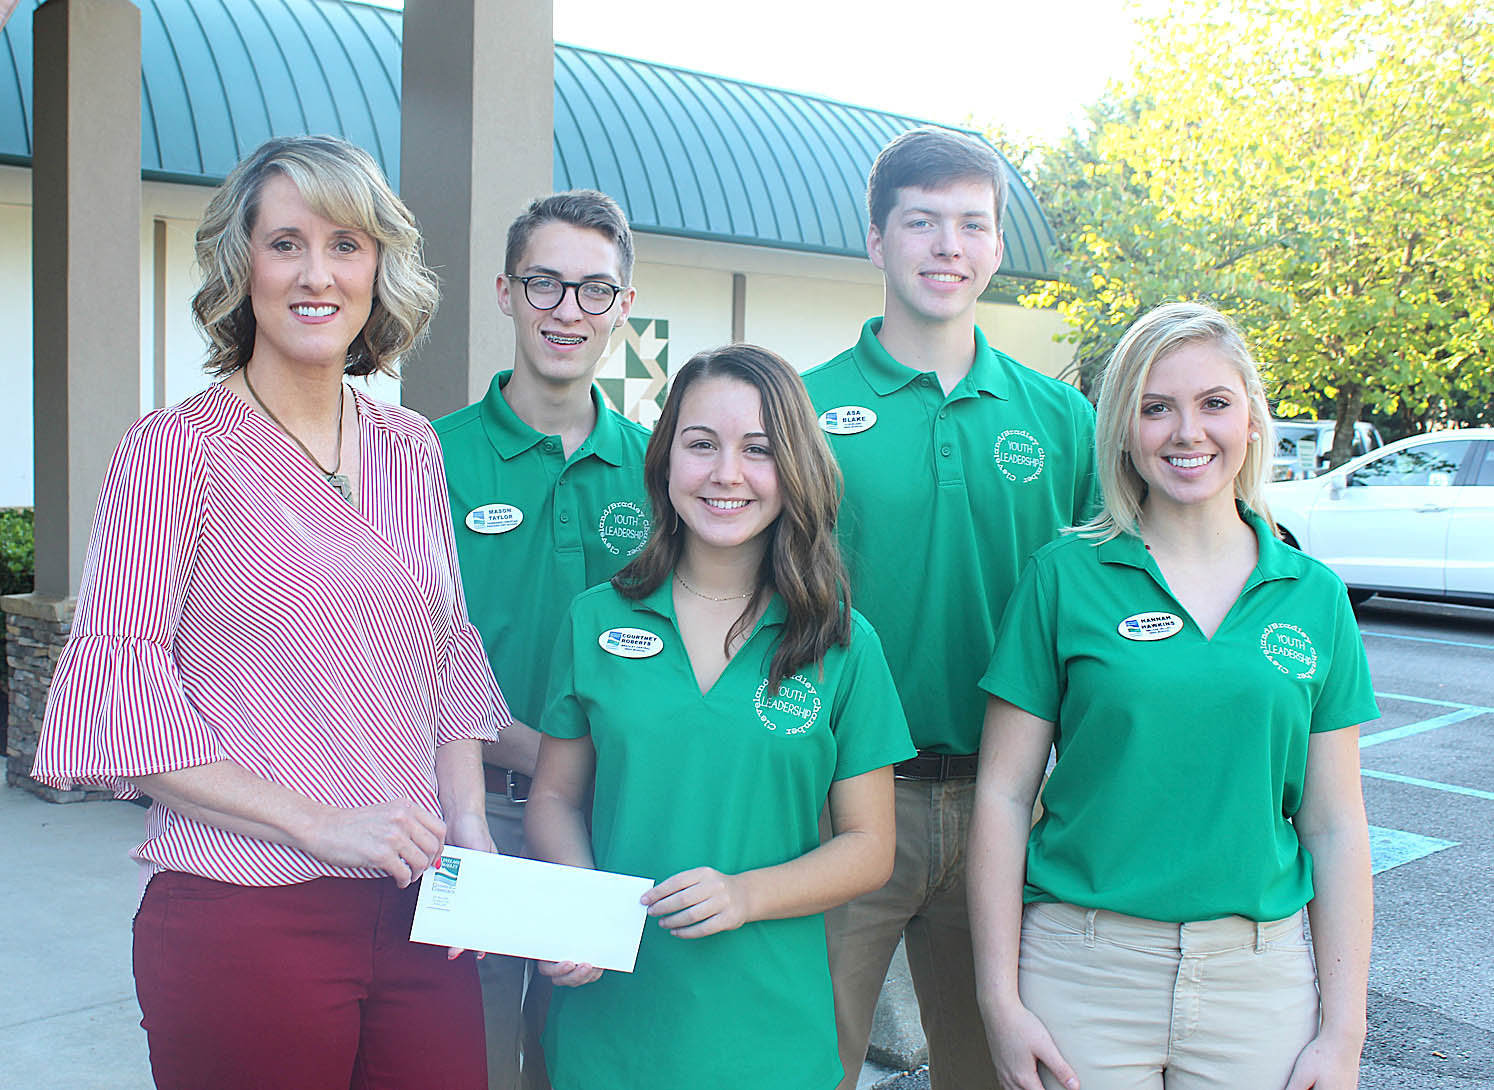 STUDENT LEADERS present a check for $1,408.63 to Tammy Johnson, Habitat for Humanity of Cleveland executive director, as part of their 2018-19 service project. Youth Leader student representatives shown, from left front, are Courtney Rogers, Bradley Central; Hannah Hawkins, Walker Valley; back, Mason Taylor, TCPS; and ASA Blake, Cleveland High School.